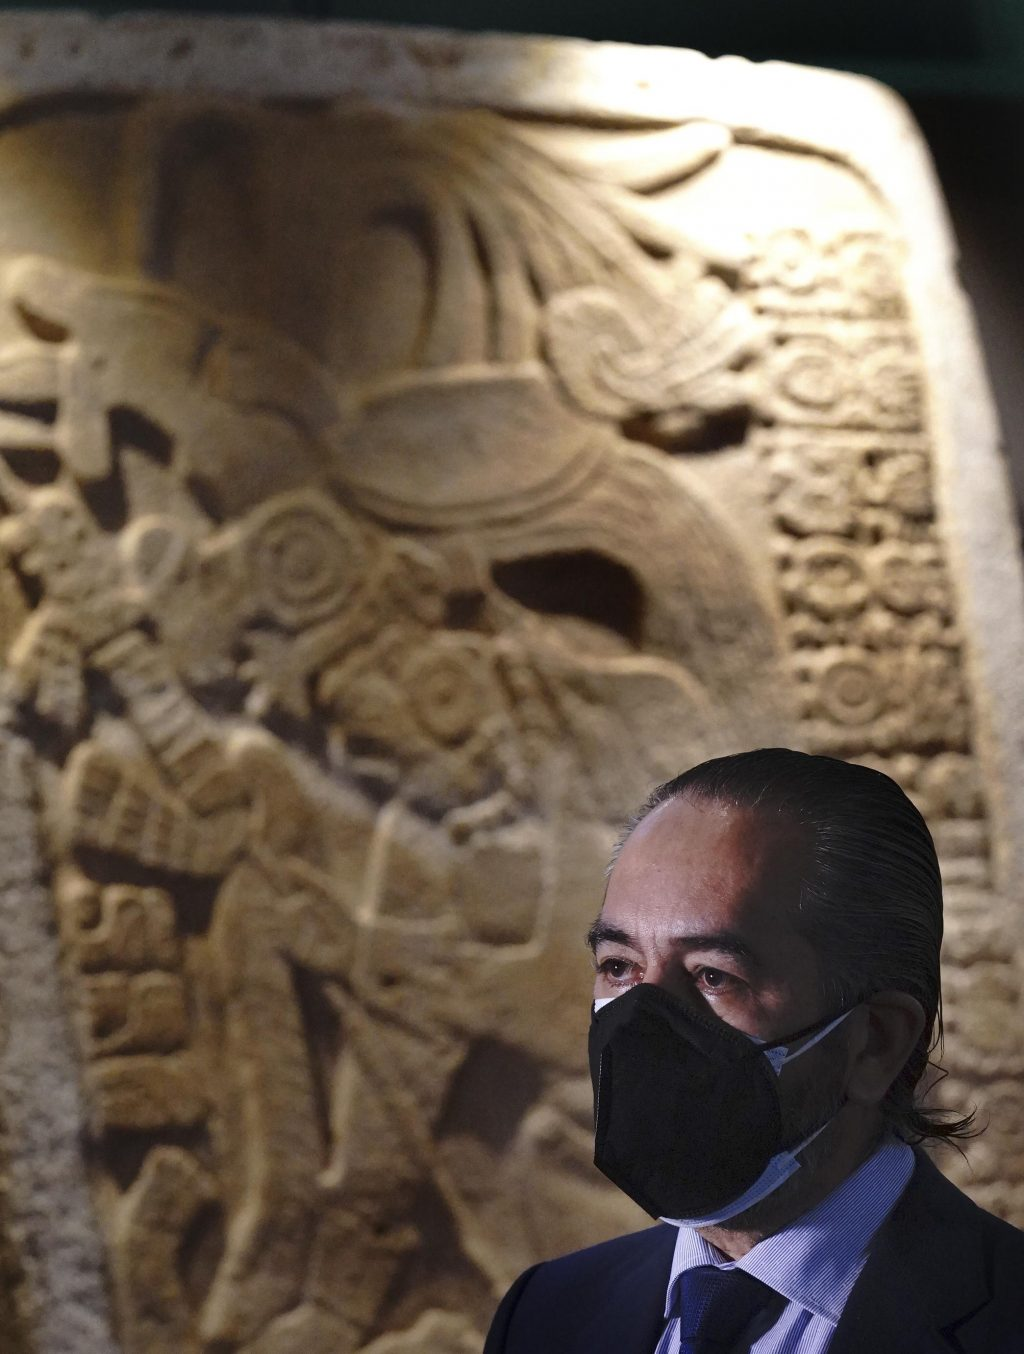 Mexico presents pre-Hispanic artefacts recovered abroad